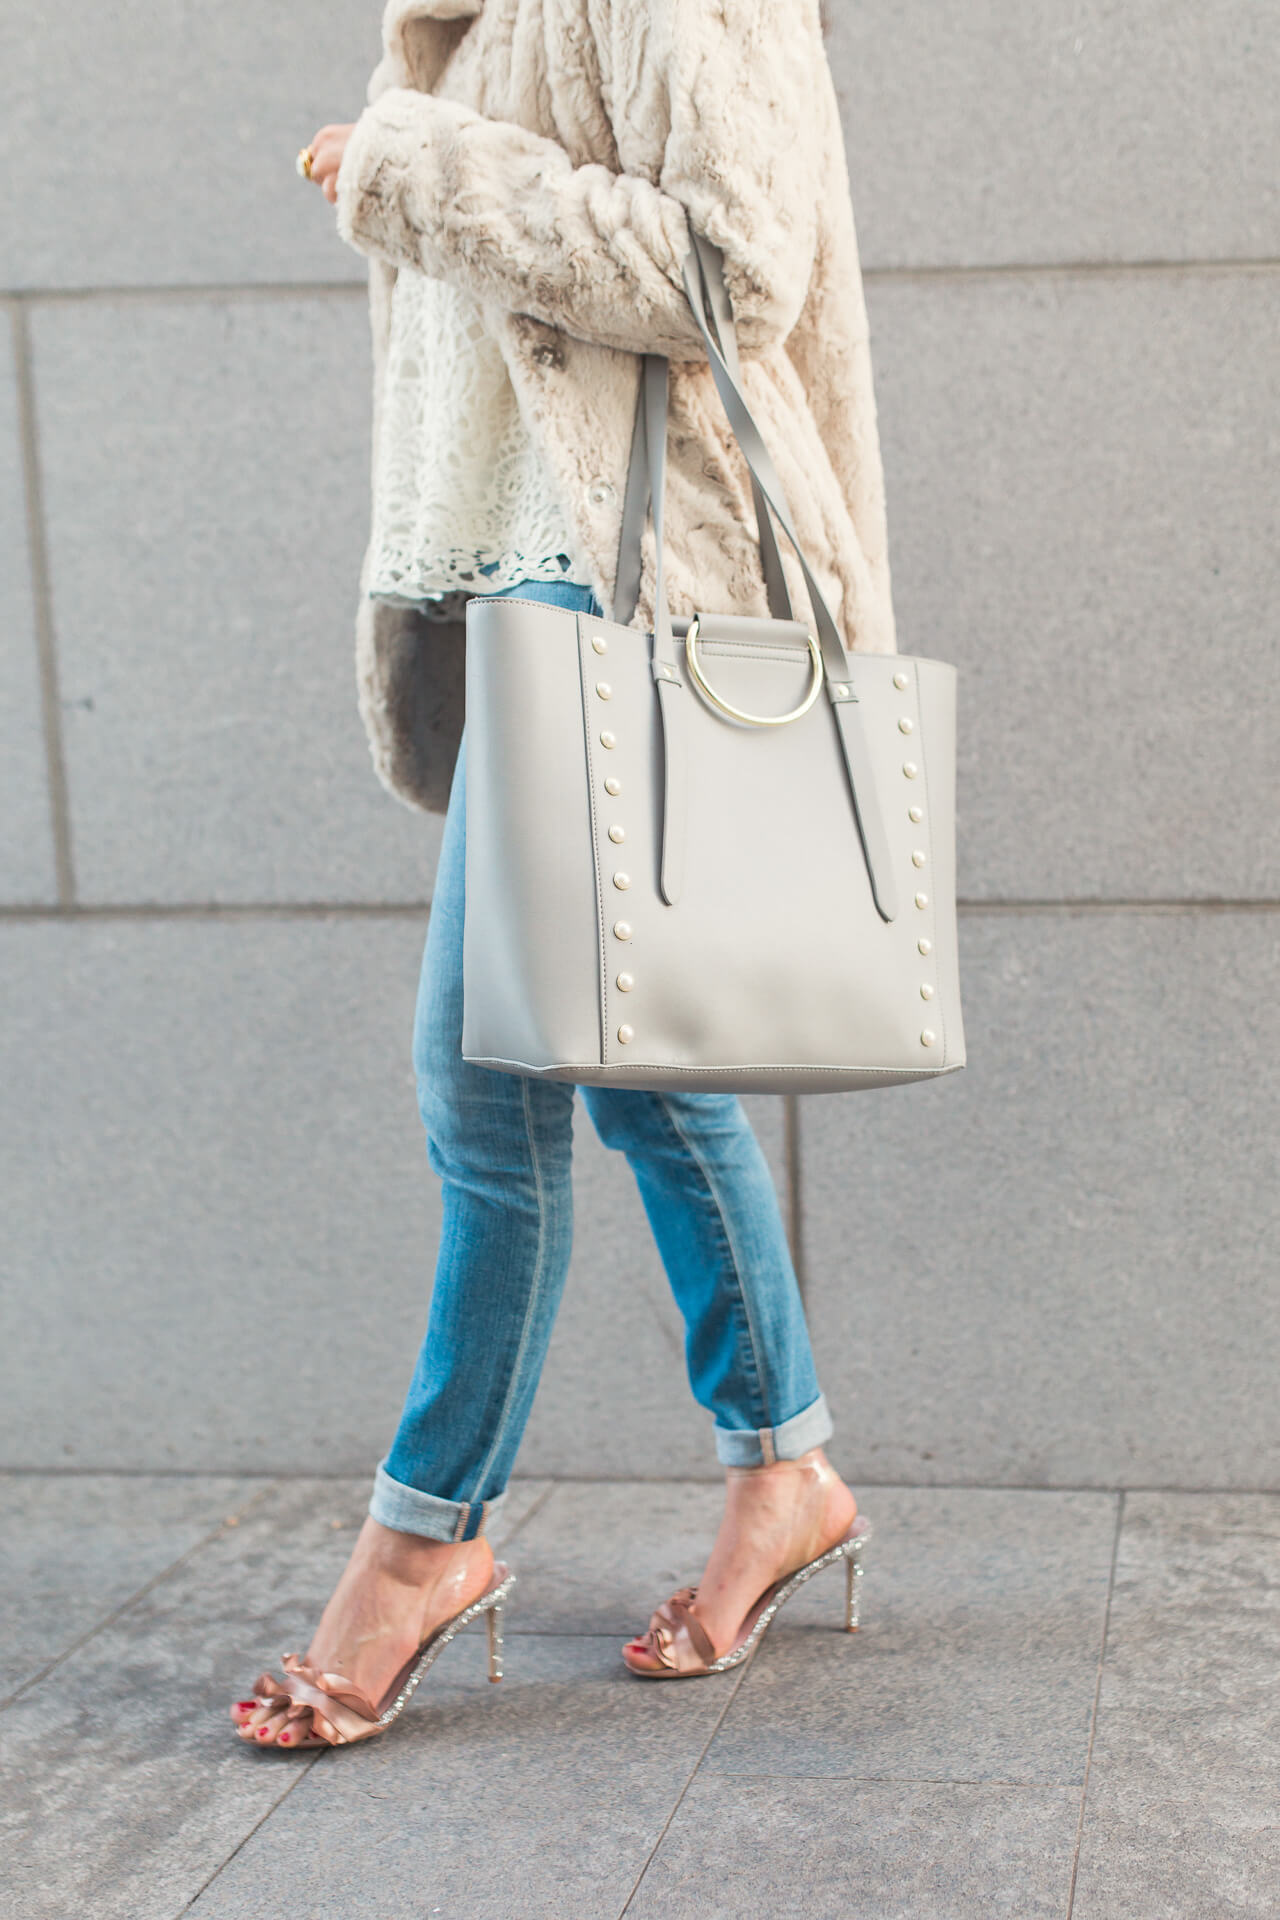 loving this pale blue tote for winter outfits